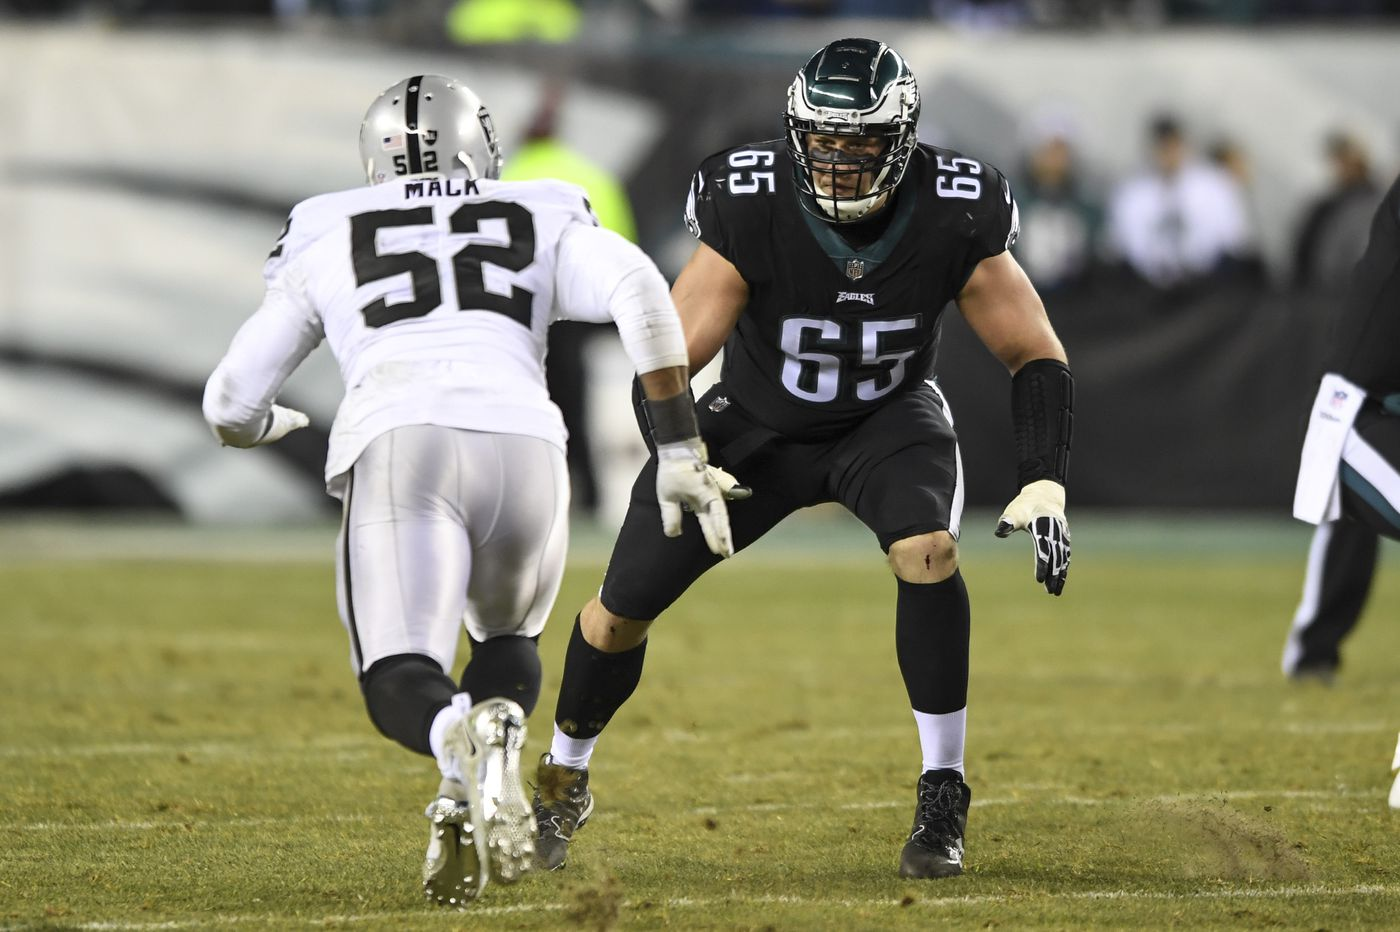 Scouting Khalil Mack: Can Eagles' Lane Johnson, Jason Peters contain the Bears' star? | Film breakdown